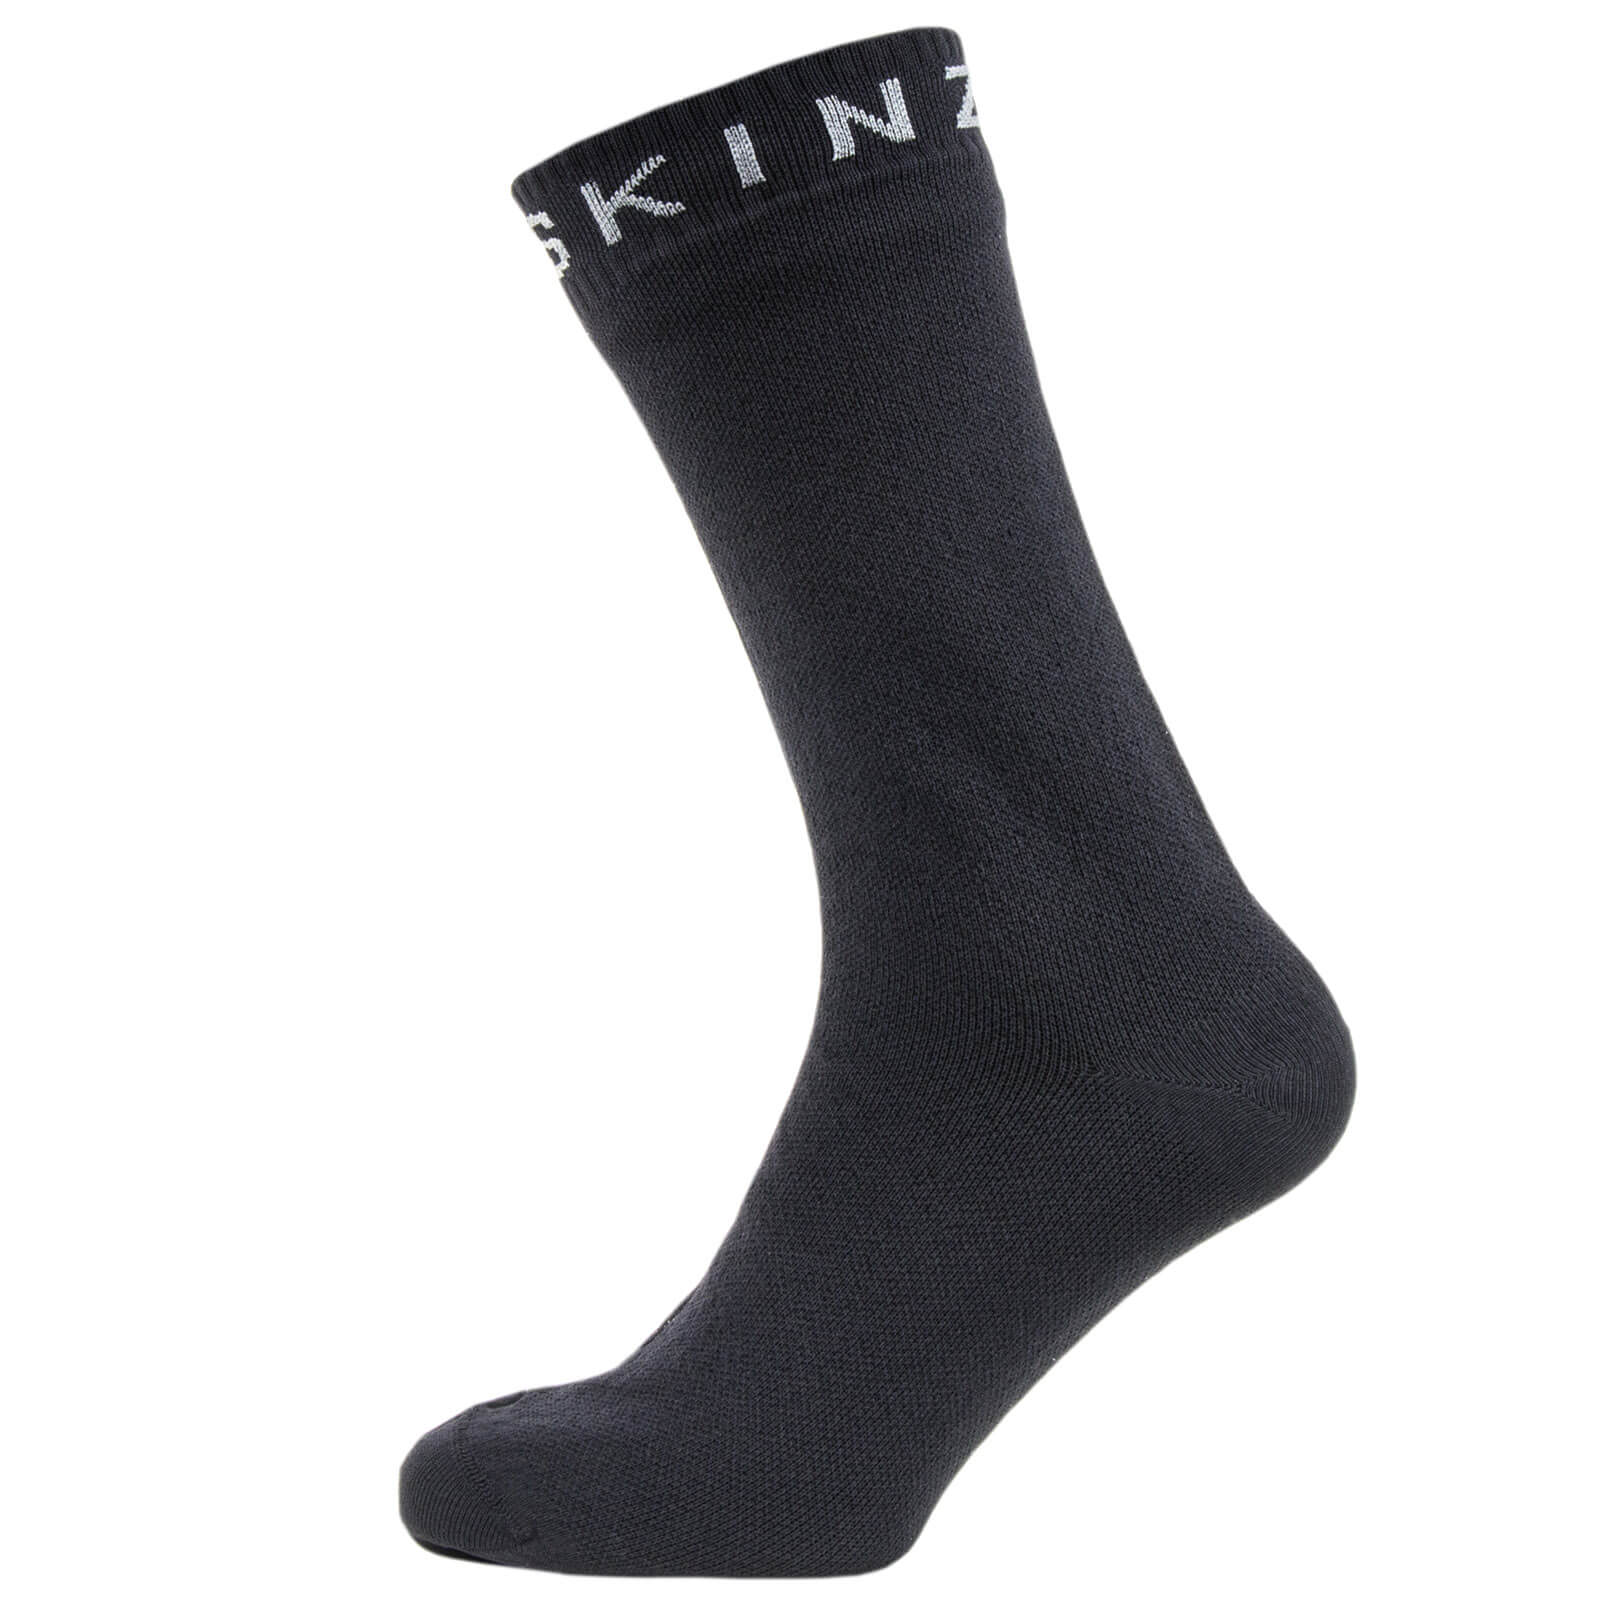 Sealskinz Super Thin Mid Socks - Black/Grey